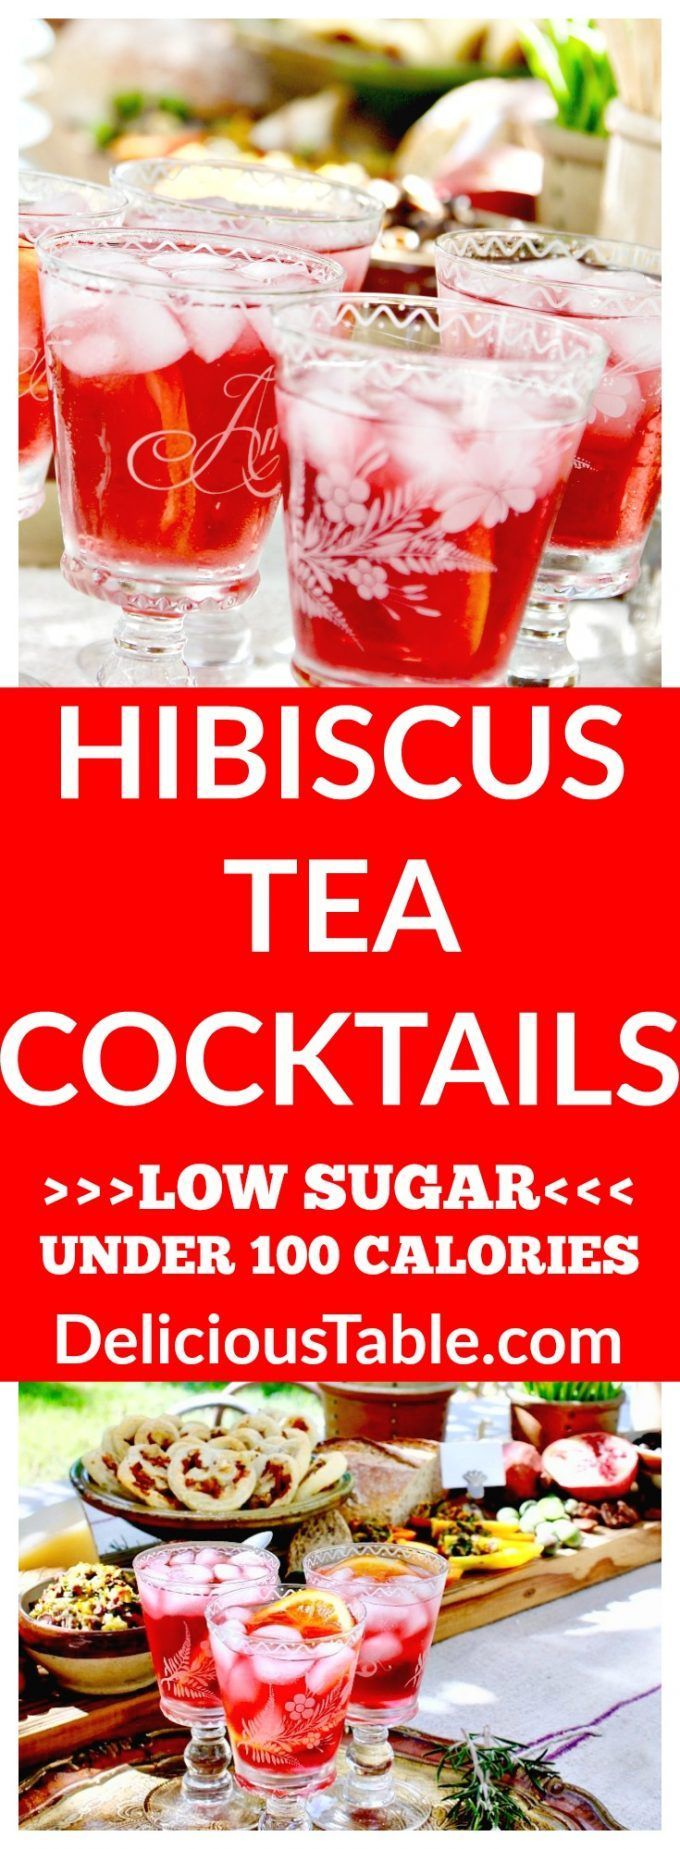 Low sugar and under 100 calories, these skinny Hibiscus Tea Cocktails are low carb, vegan, and gluten-free. A refreshing festive drink, that is healthier! via @www.pinterest.com/delicioustable #cocktailrecipes #lowsugarrecipes #lowcarbrecipes #glutenfreerecipes